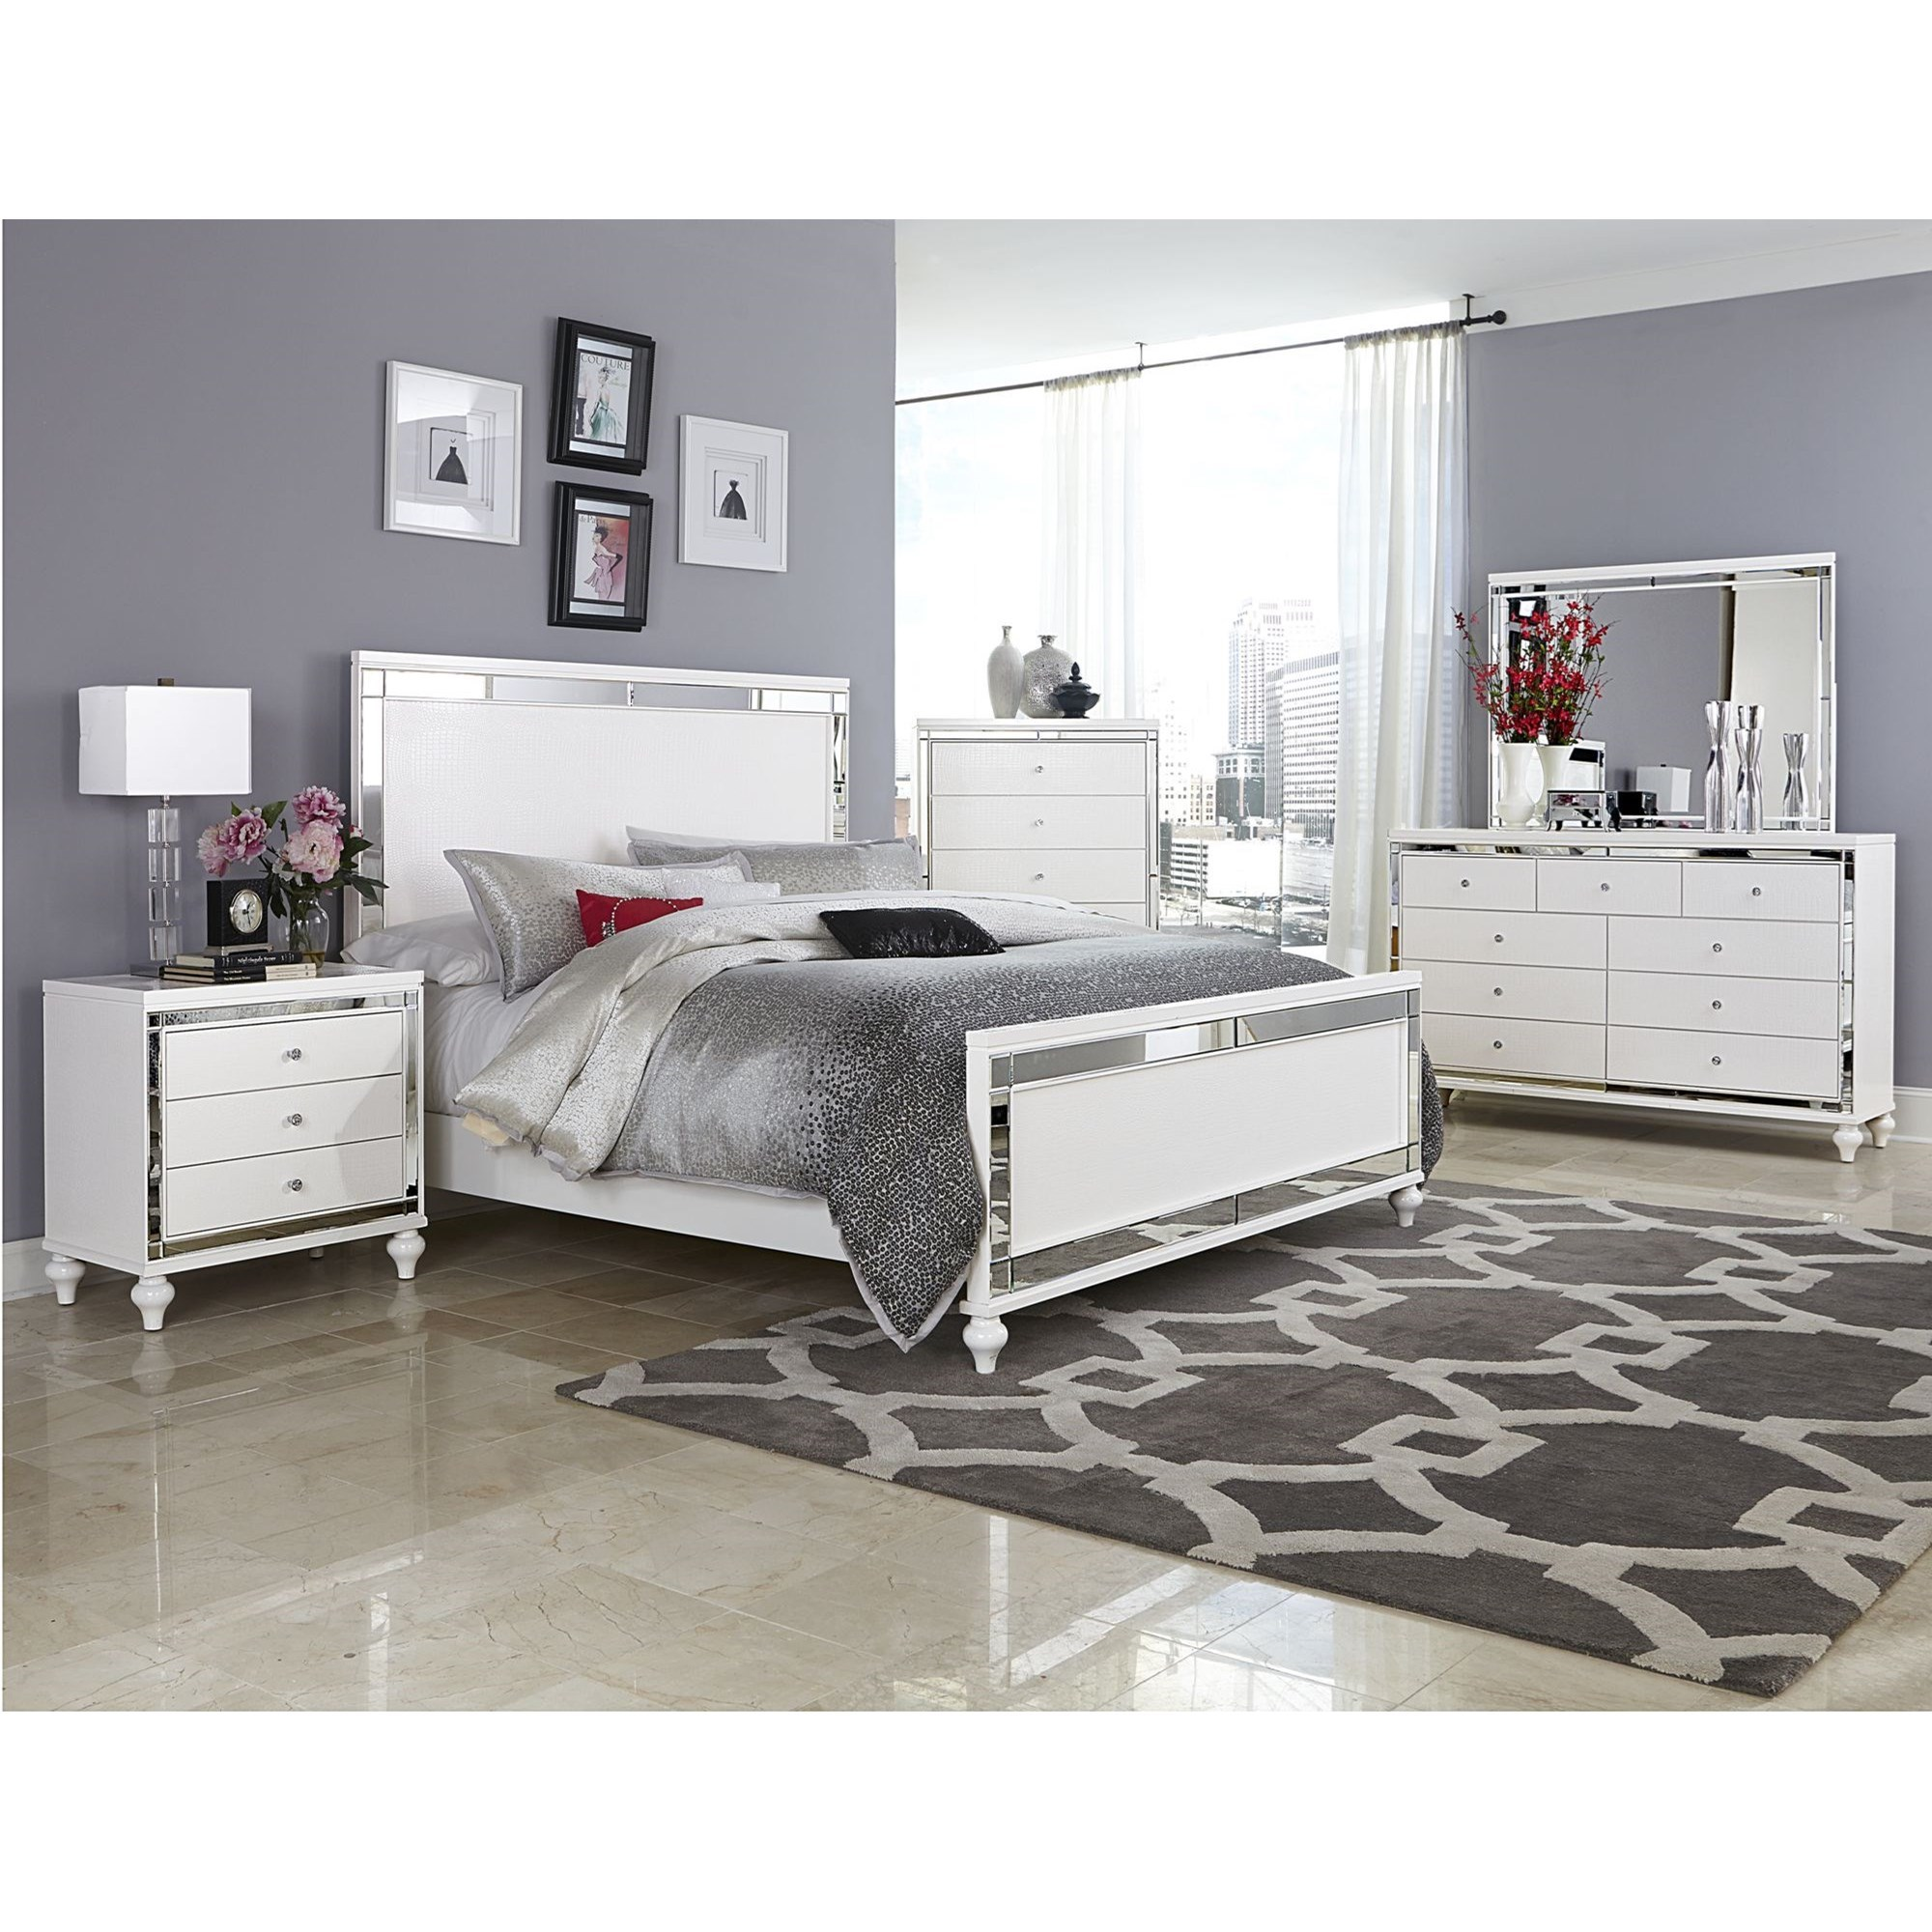 Alonza King Bedroom Group by Homelegance at Value City Furniture